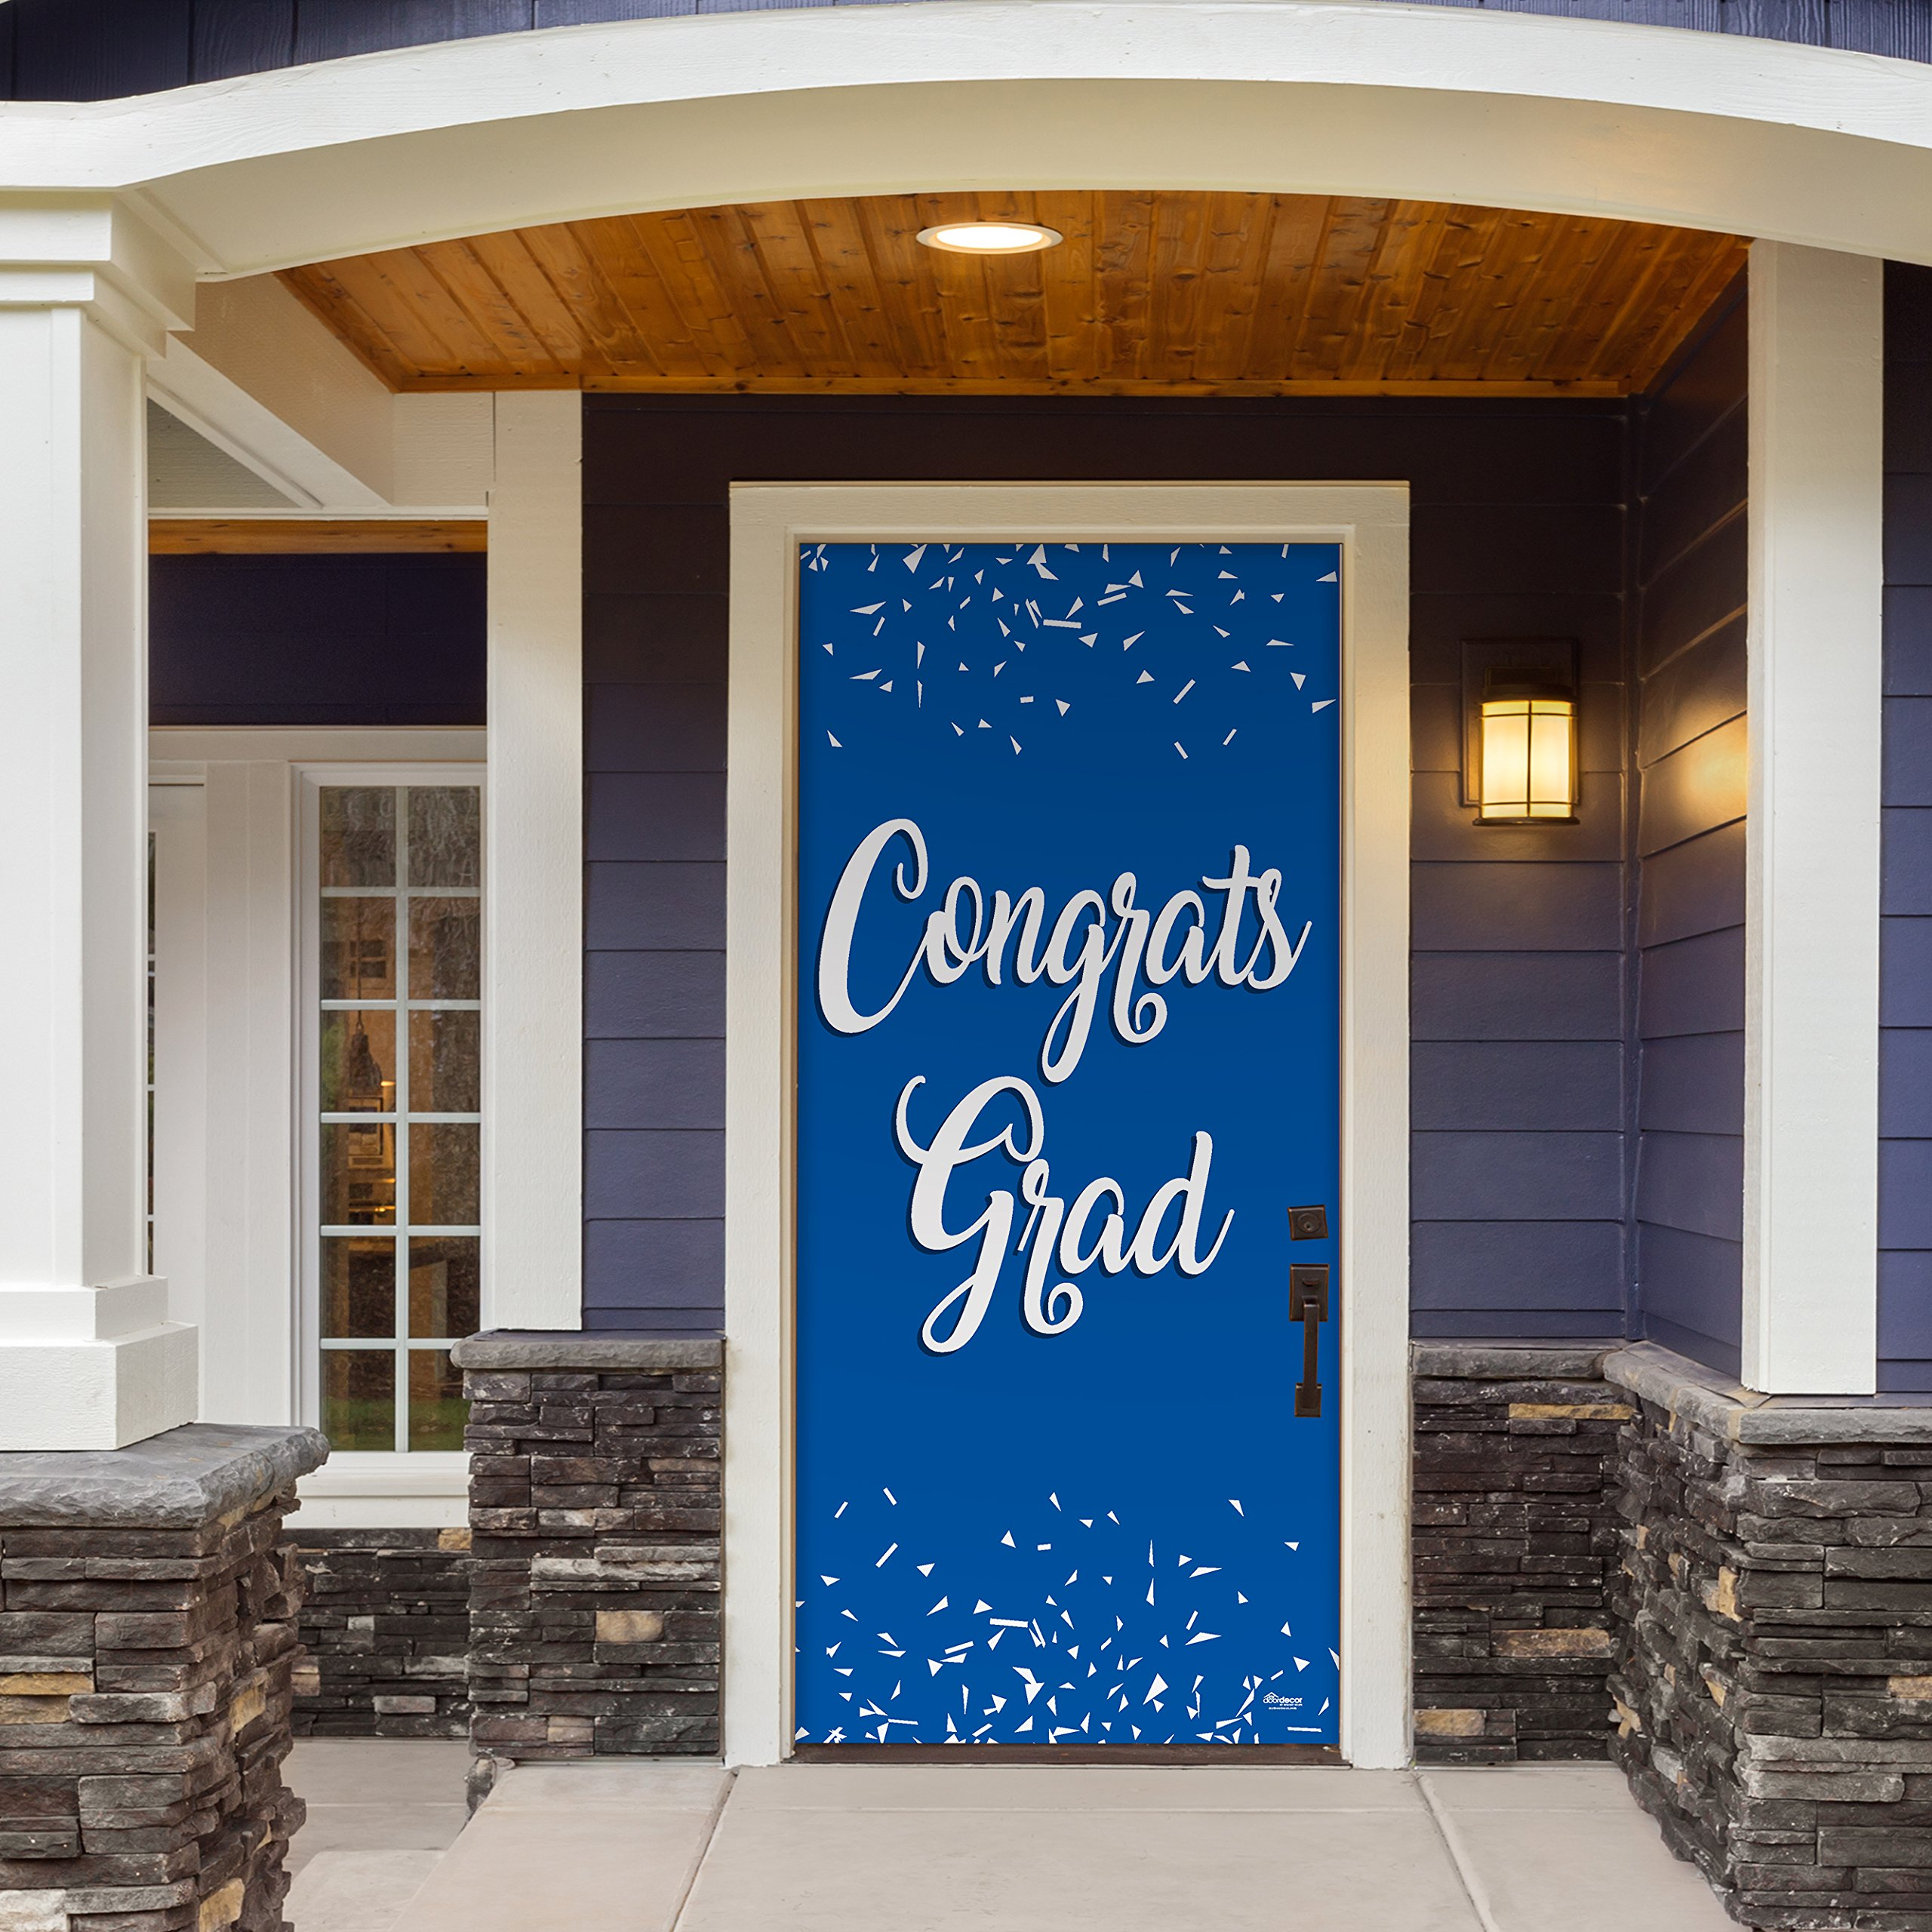 Victory Corps Congrats Grad Blue - Outdoor GRADUATION Garage Door Banner Mural Sign Décor 36'' x 80'' One Size Fits All Front Door Car Garage -The Original Holiday Front Door Banner Decor